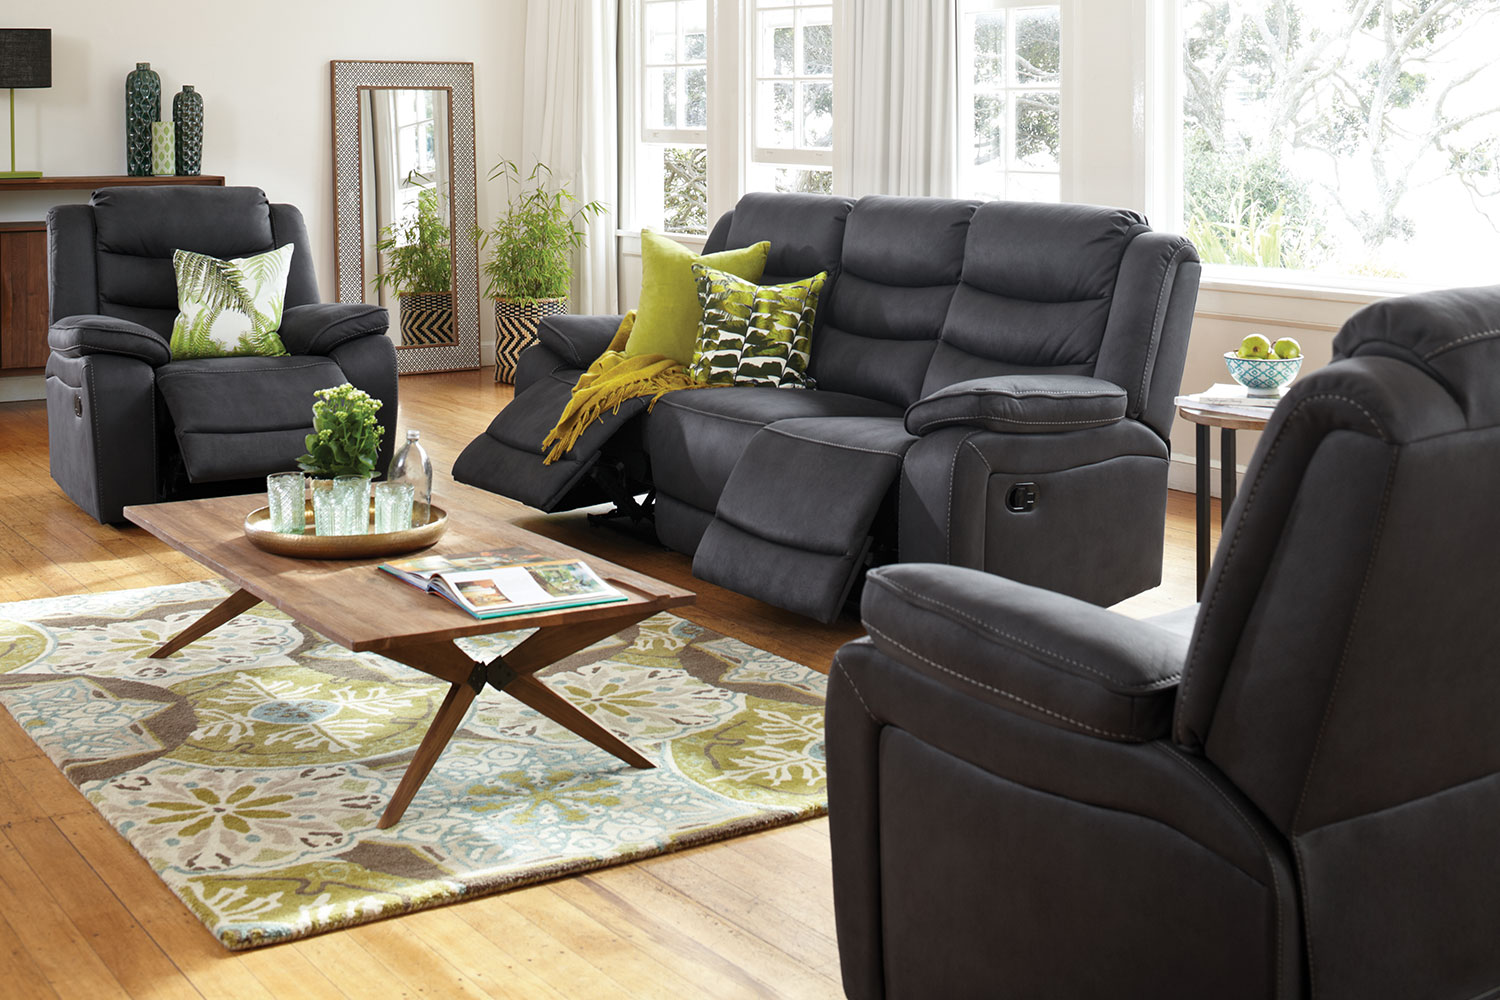 leather recliner chairs harvey norman white garden plastic tyler 3 piece fabric lounge suite